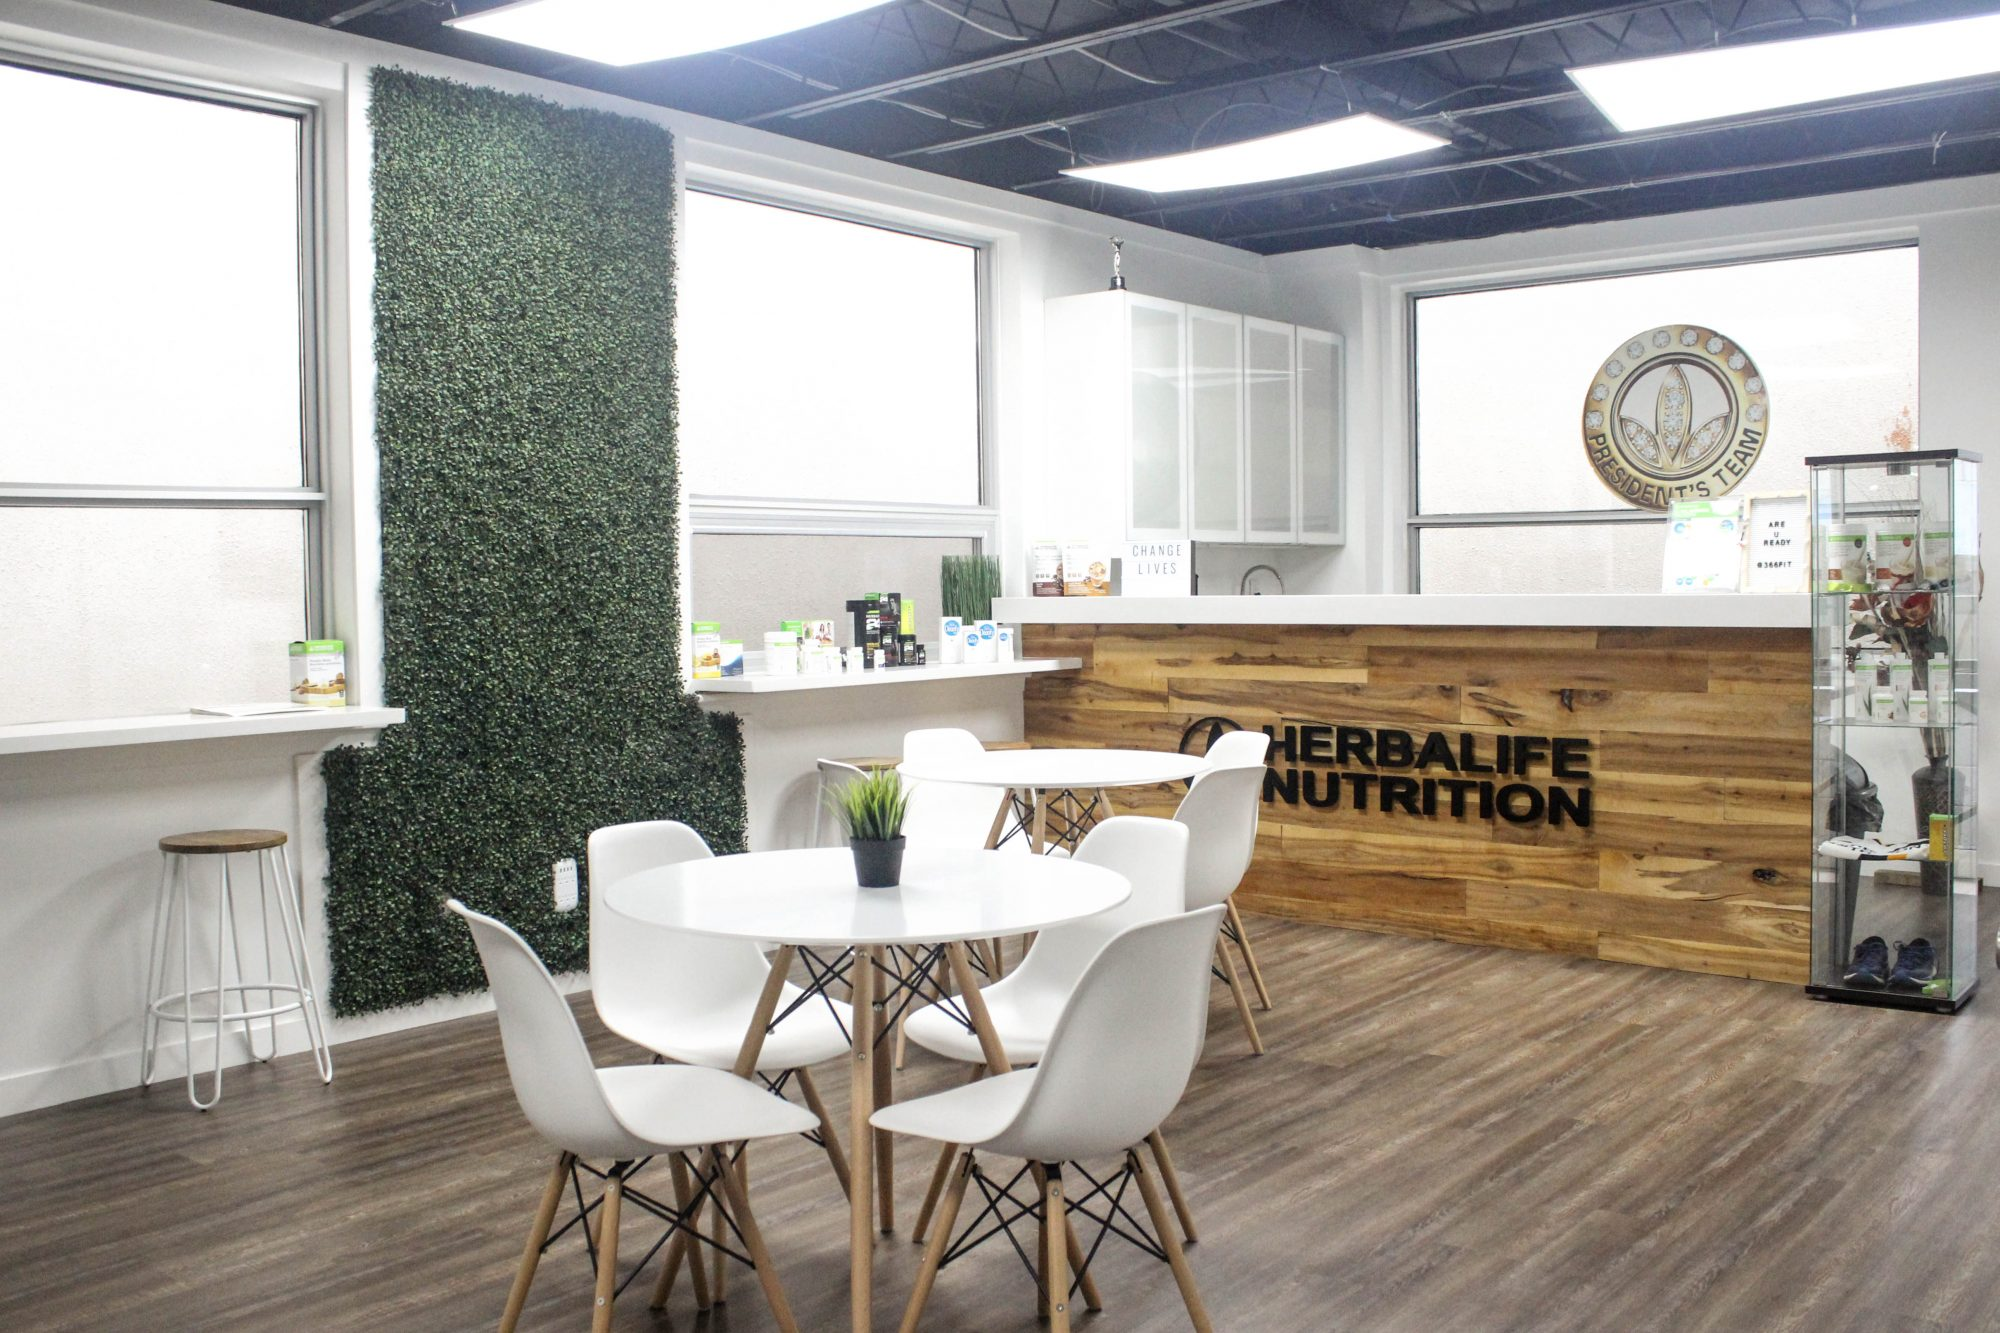 T-fitness gym Herbalife bar